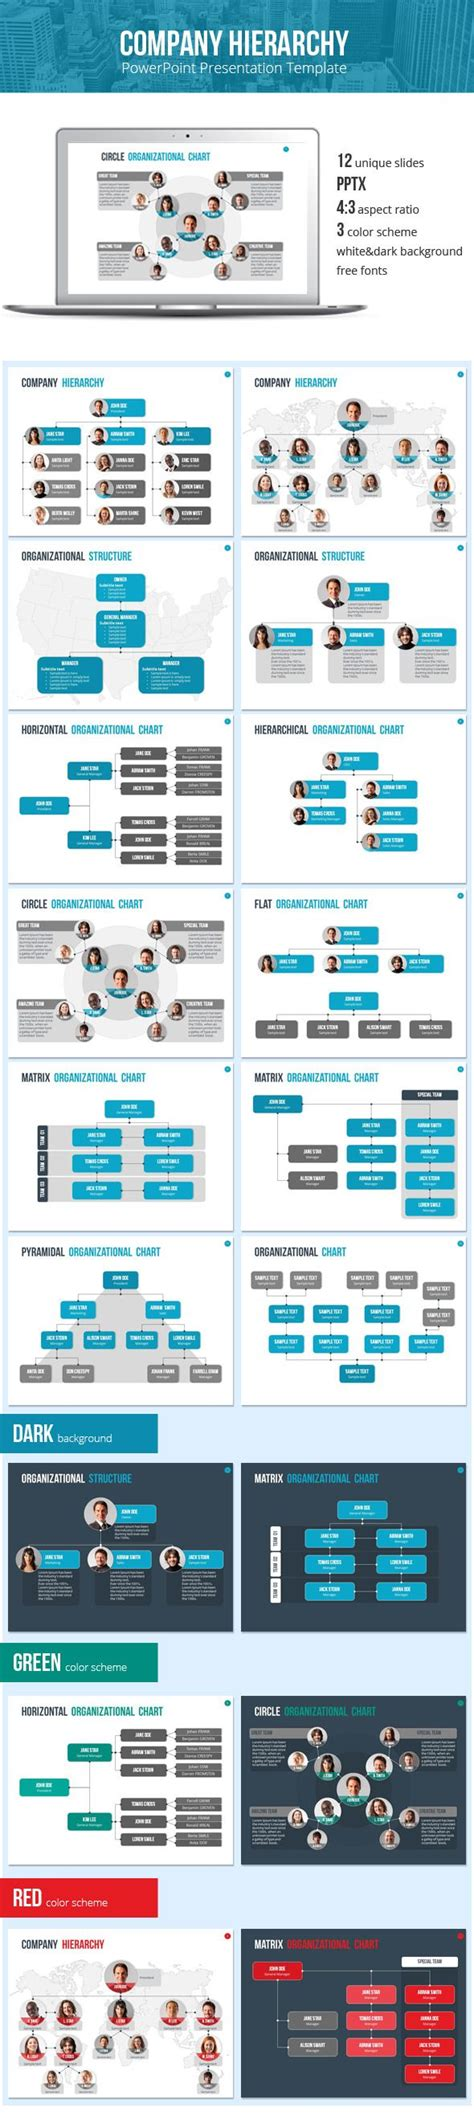 template hierarchy in organizational chart and hierarchy template business